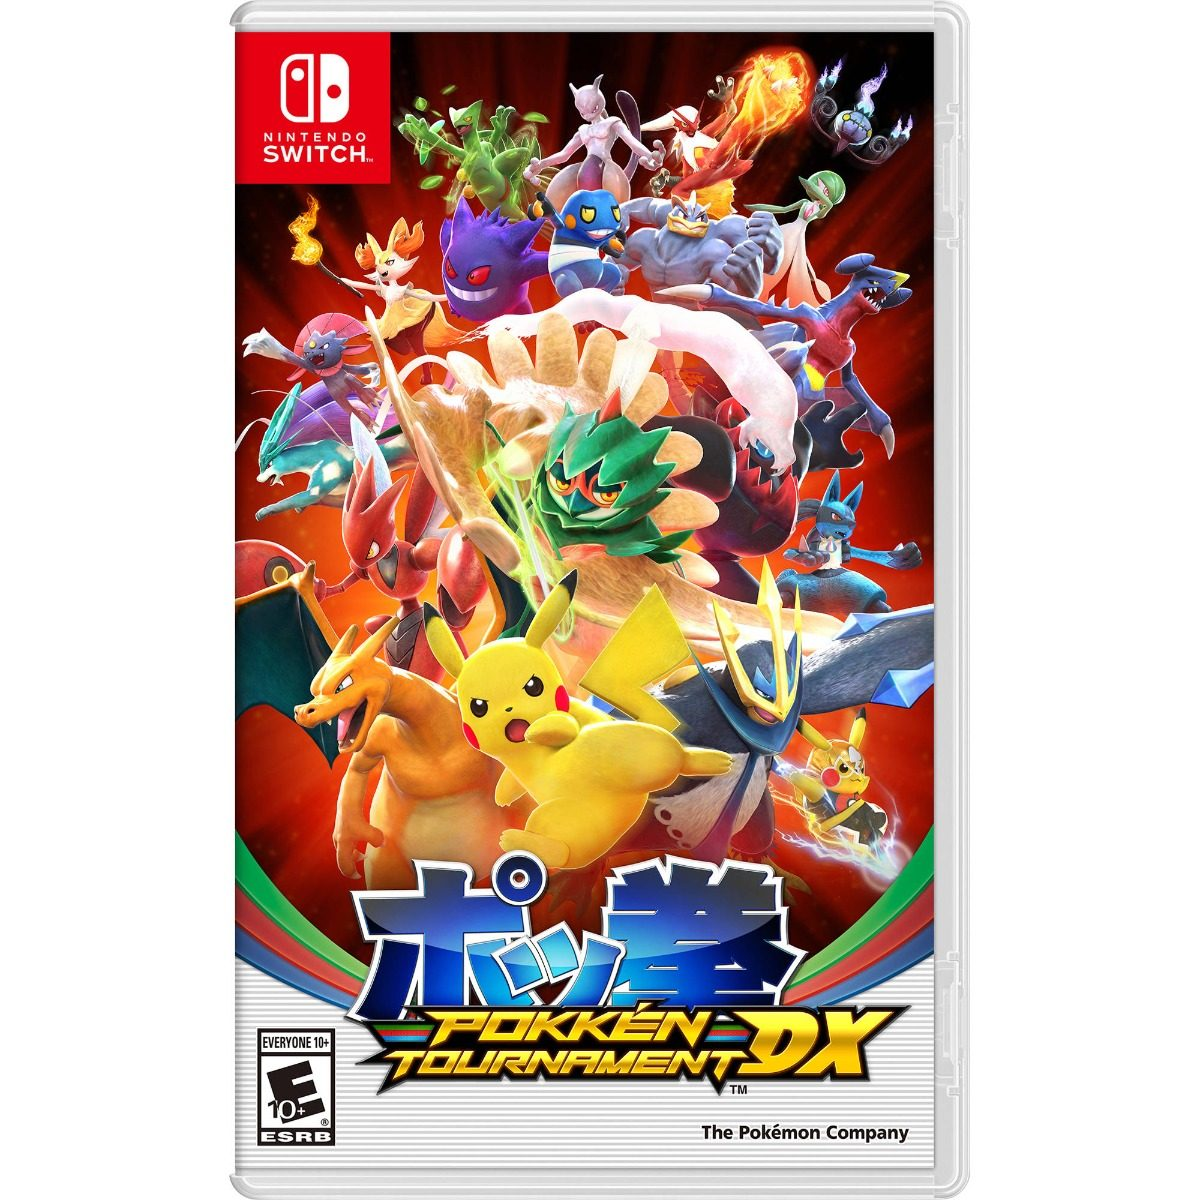 Juego Para Nintendo Switch Pokken Tournament Dx 2 199 00 En